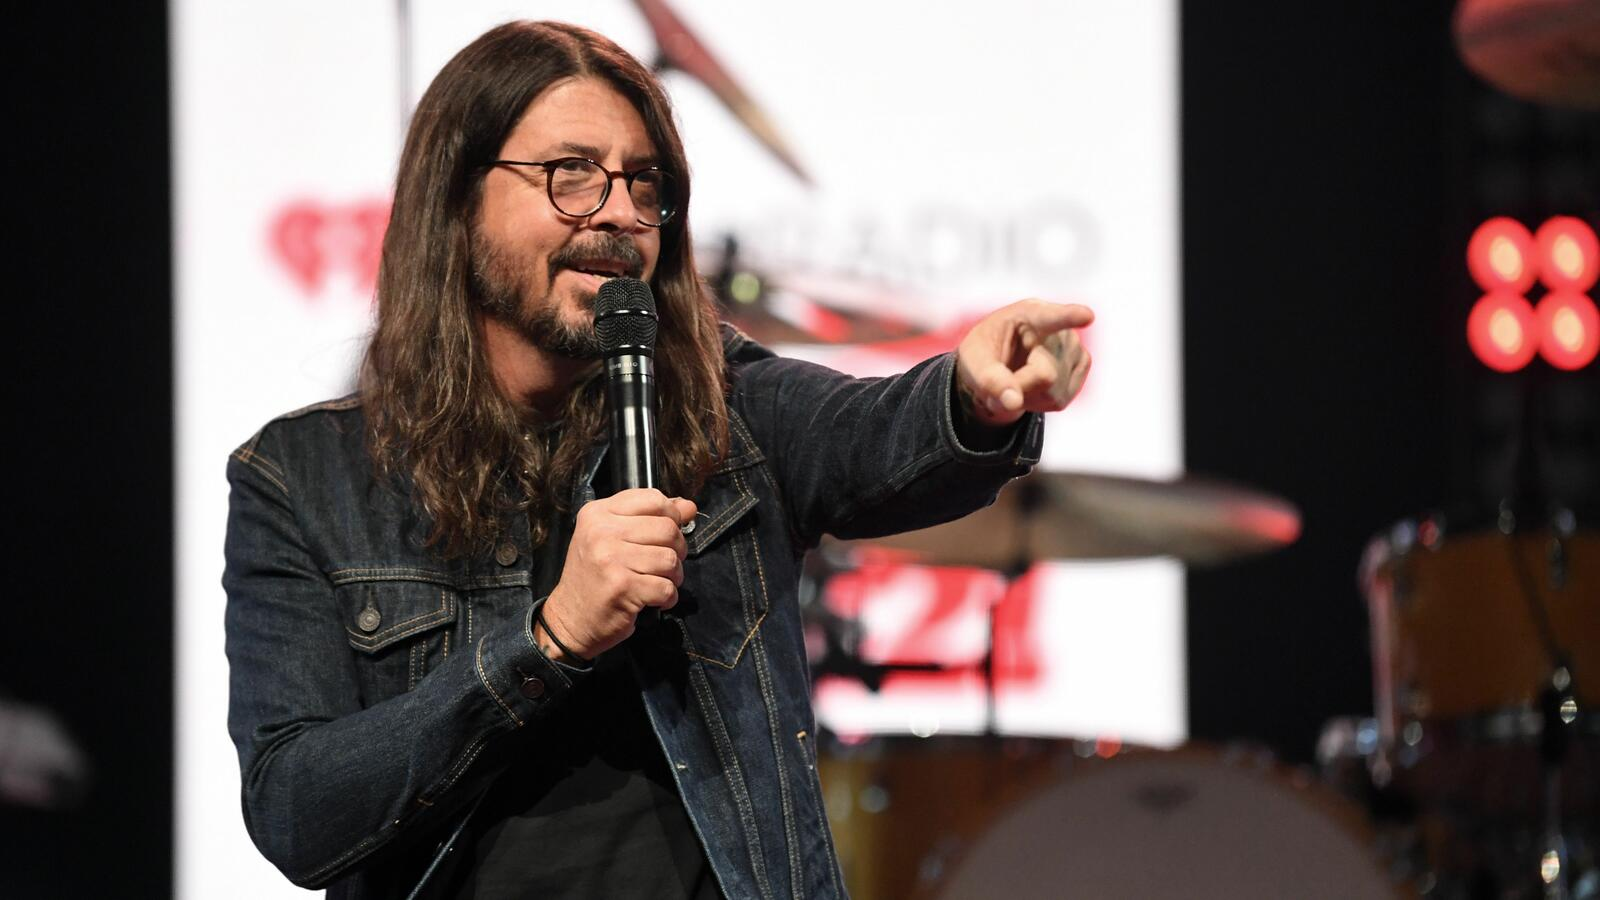 Interview with Dave Grohl